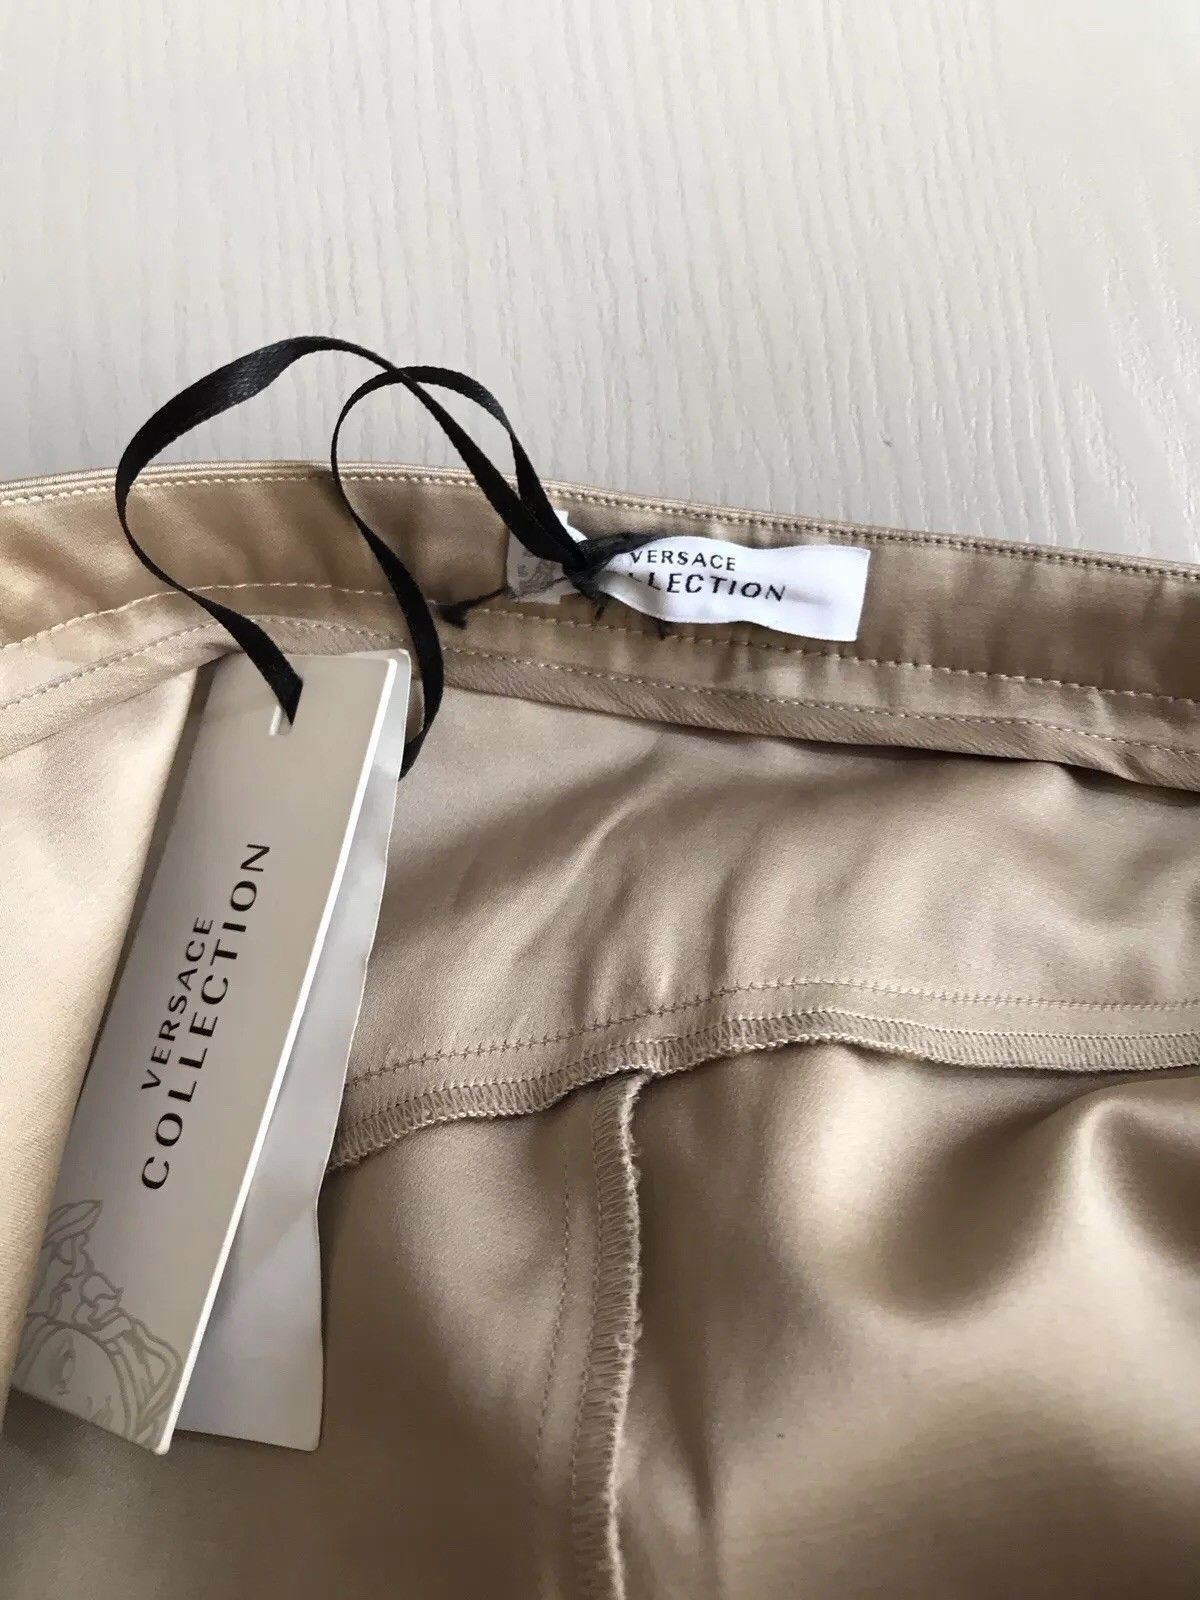 New $1245 Versace Collection Women's Skirt Beige Size 4 US ( 40 Ita ) Italy